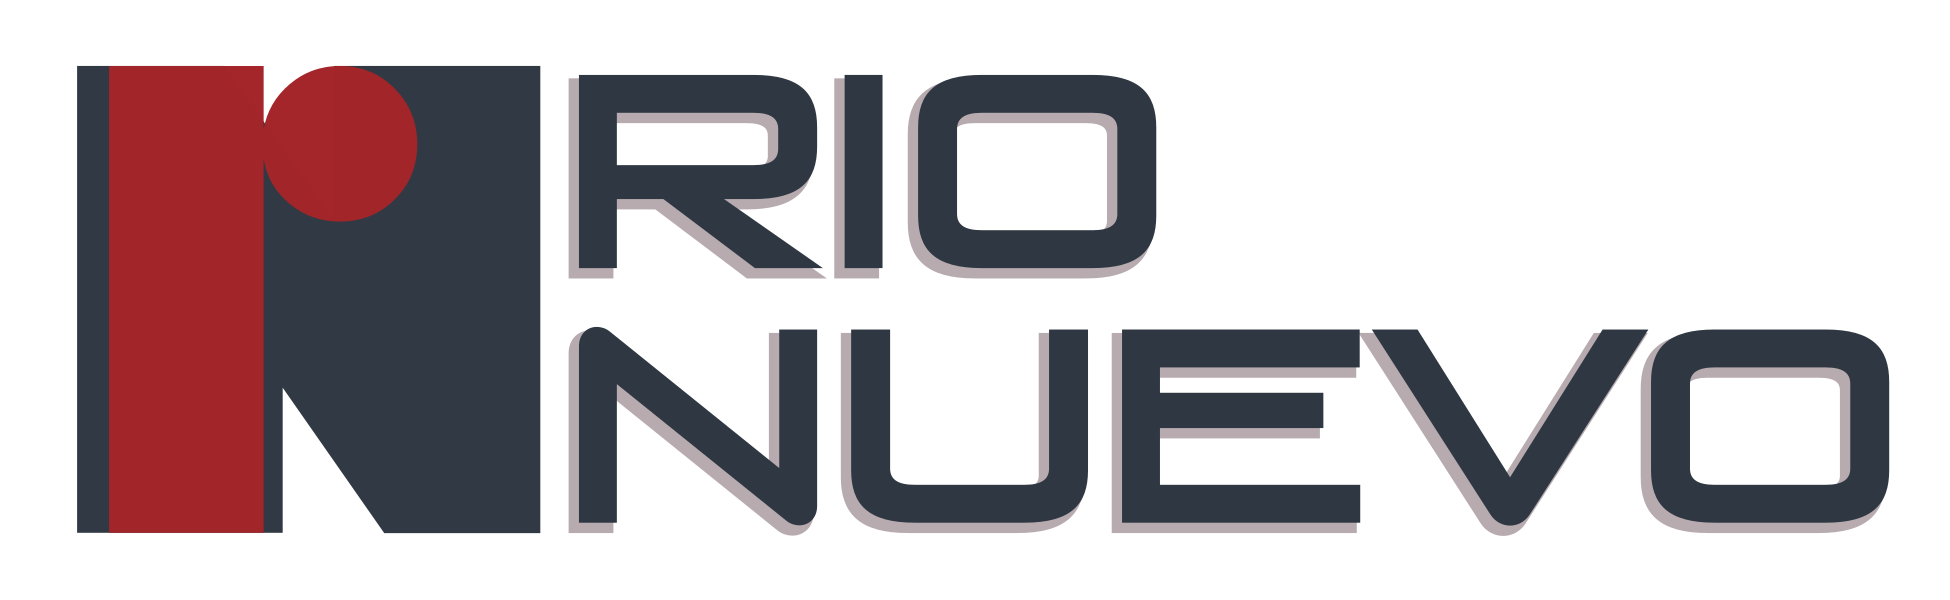 RN Logo- 6.5 x 2- Clear Background.png